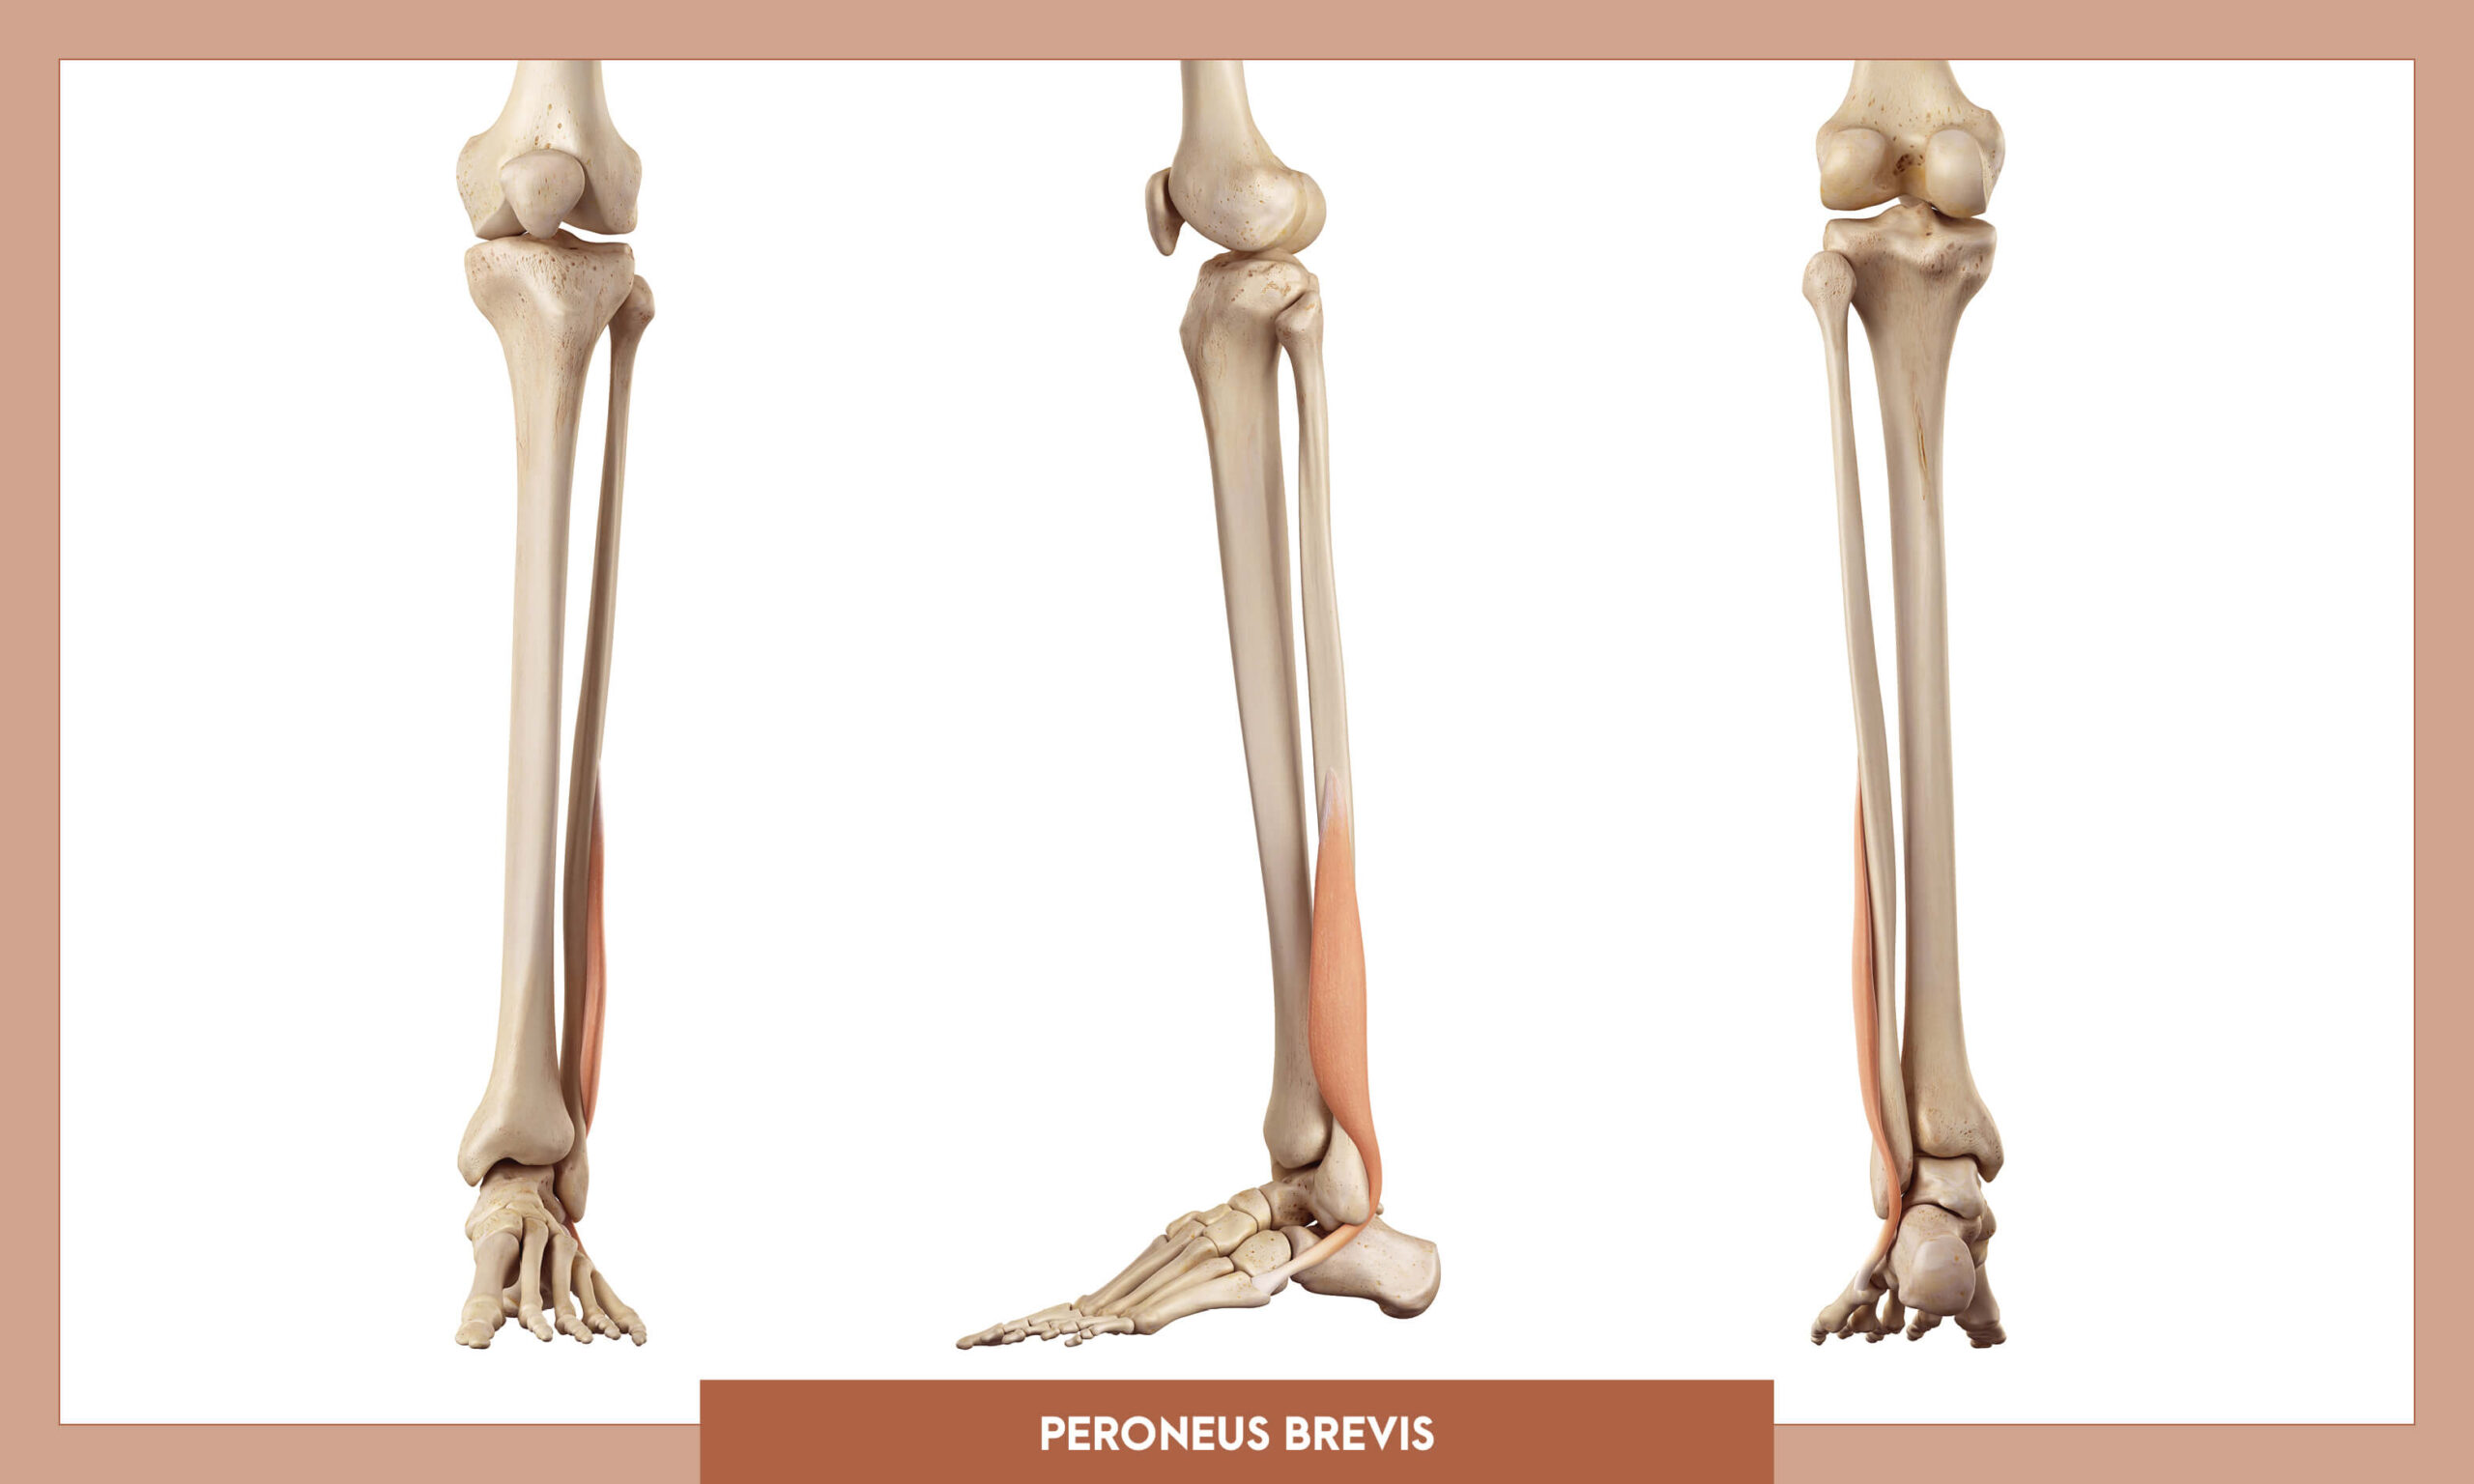 Muscles of thee Lower Limb - Peroneus brevis